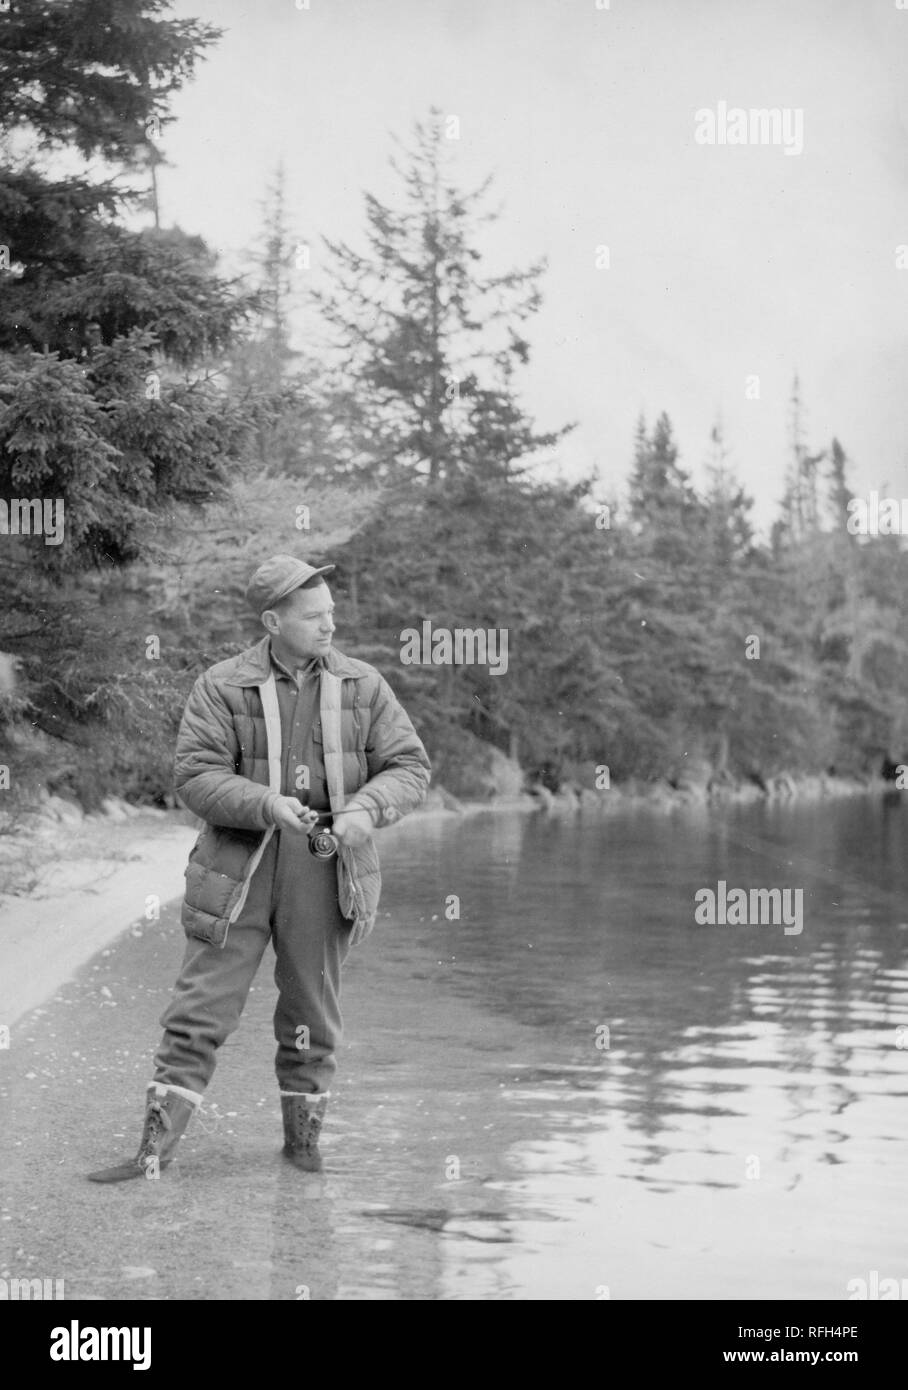 Black and white photograph of a middle-aged man, wearing a jacket, overalls, boots, and cap, shown in full-length view, standing in a body of water with his boots submerged to the ankle, with his head turned in profile to look toward the line of a fishing rod which he reels with both hands, with trees and foliage visible in the background, photographed during a hunting trip located in Alaska, USA, 1955. () - Stock Image